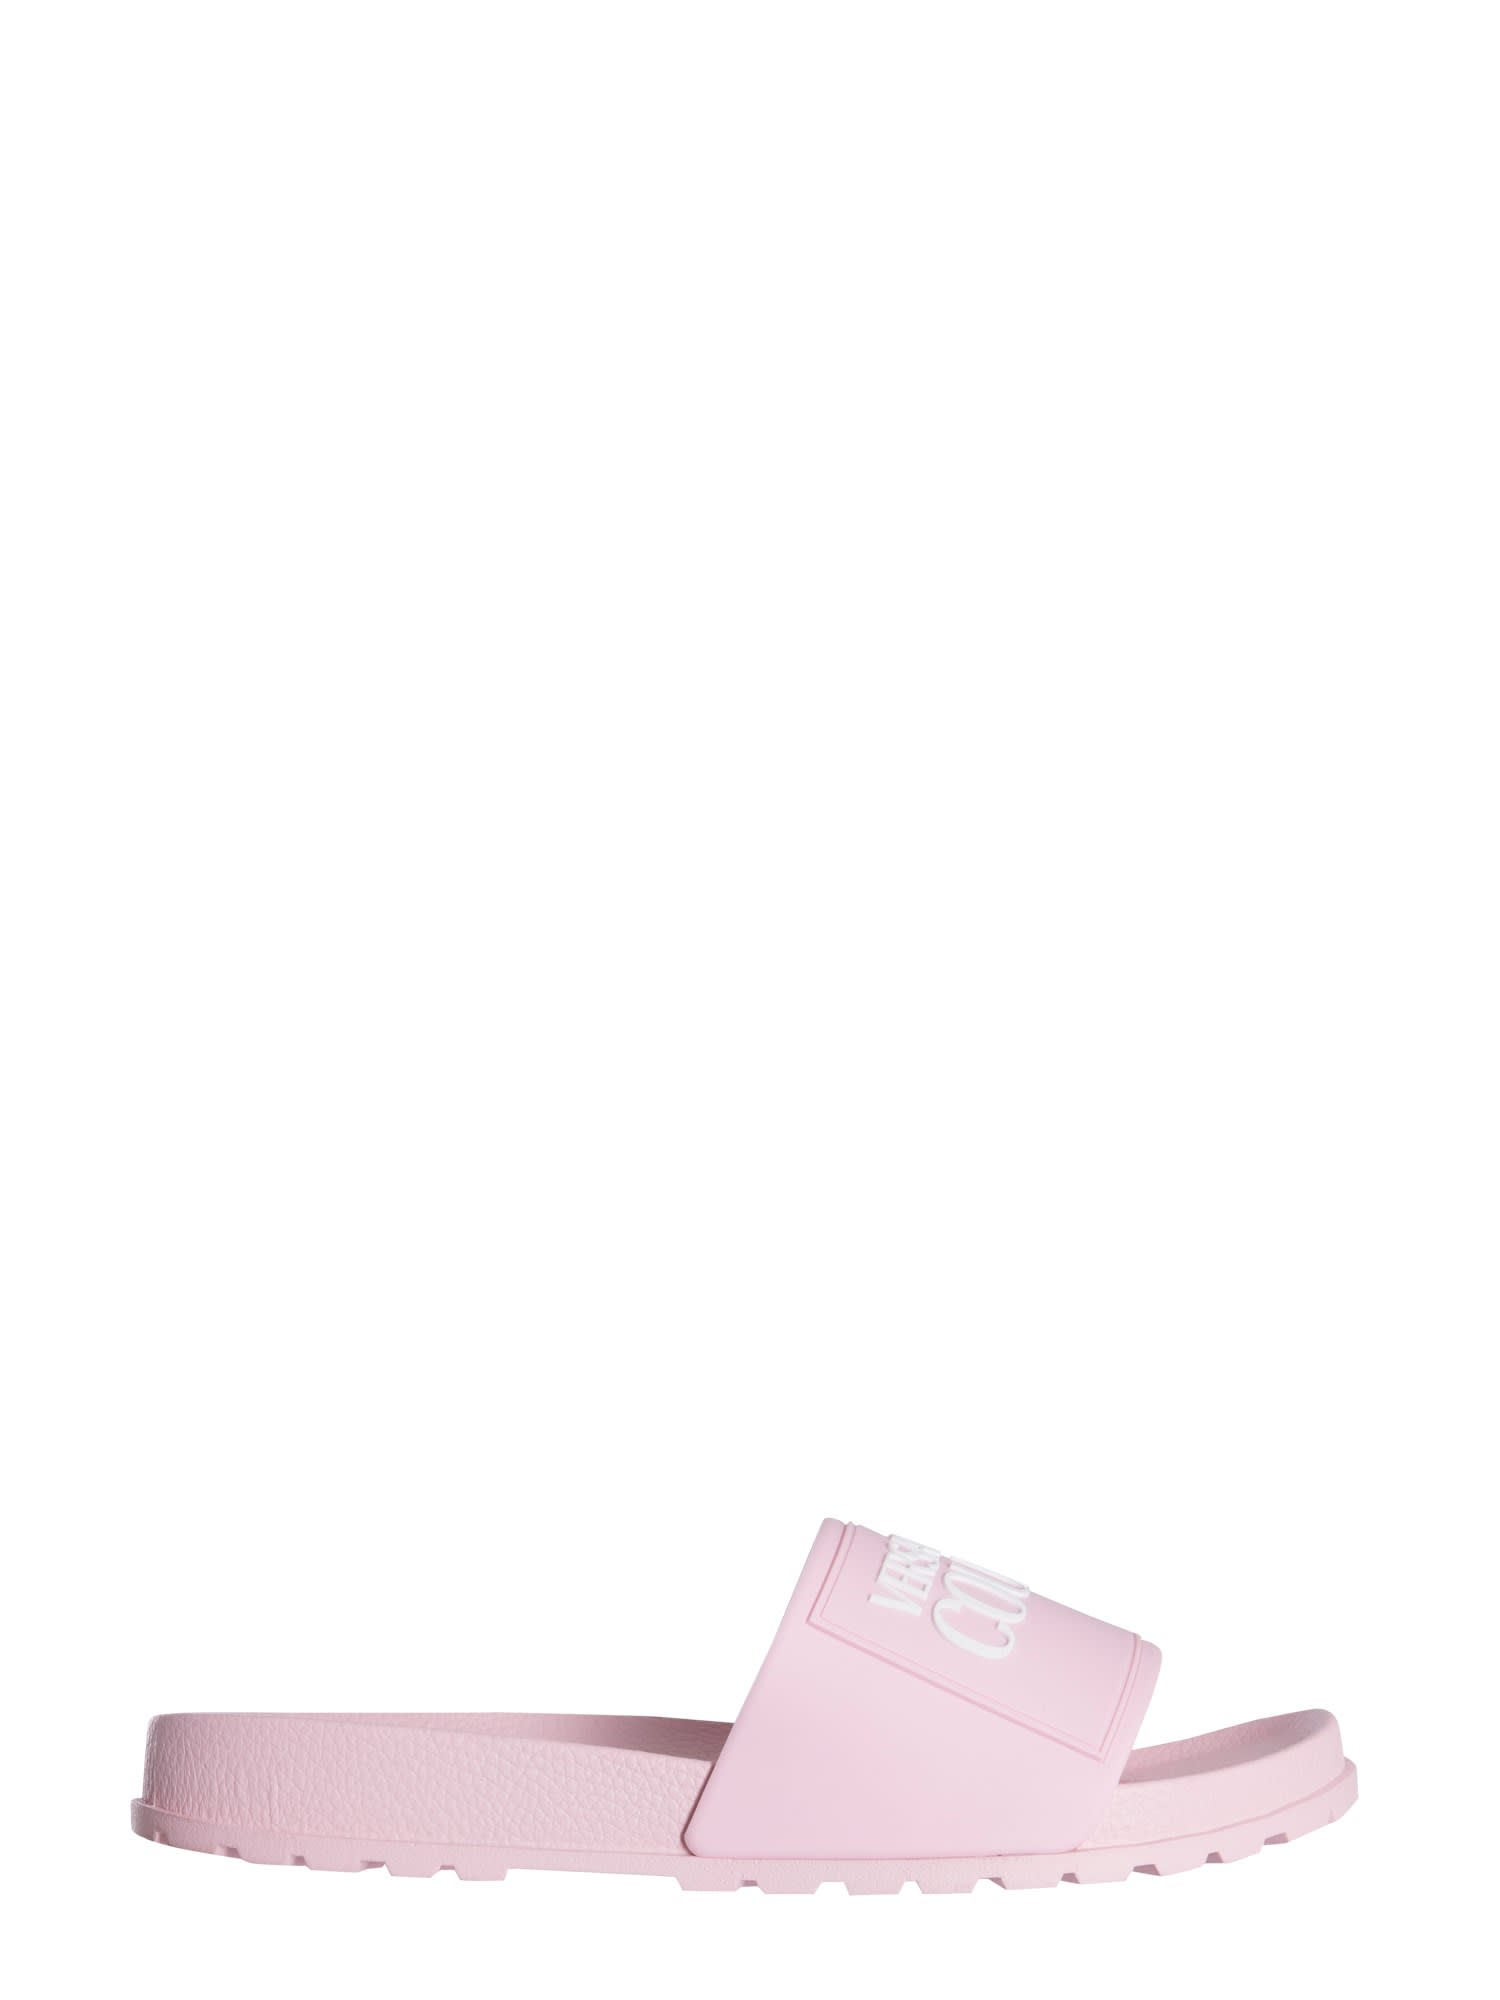 Versace Jeans Couture Slippers SLIDE SANDALS WITH LOGO